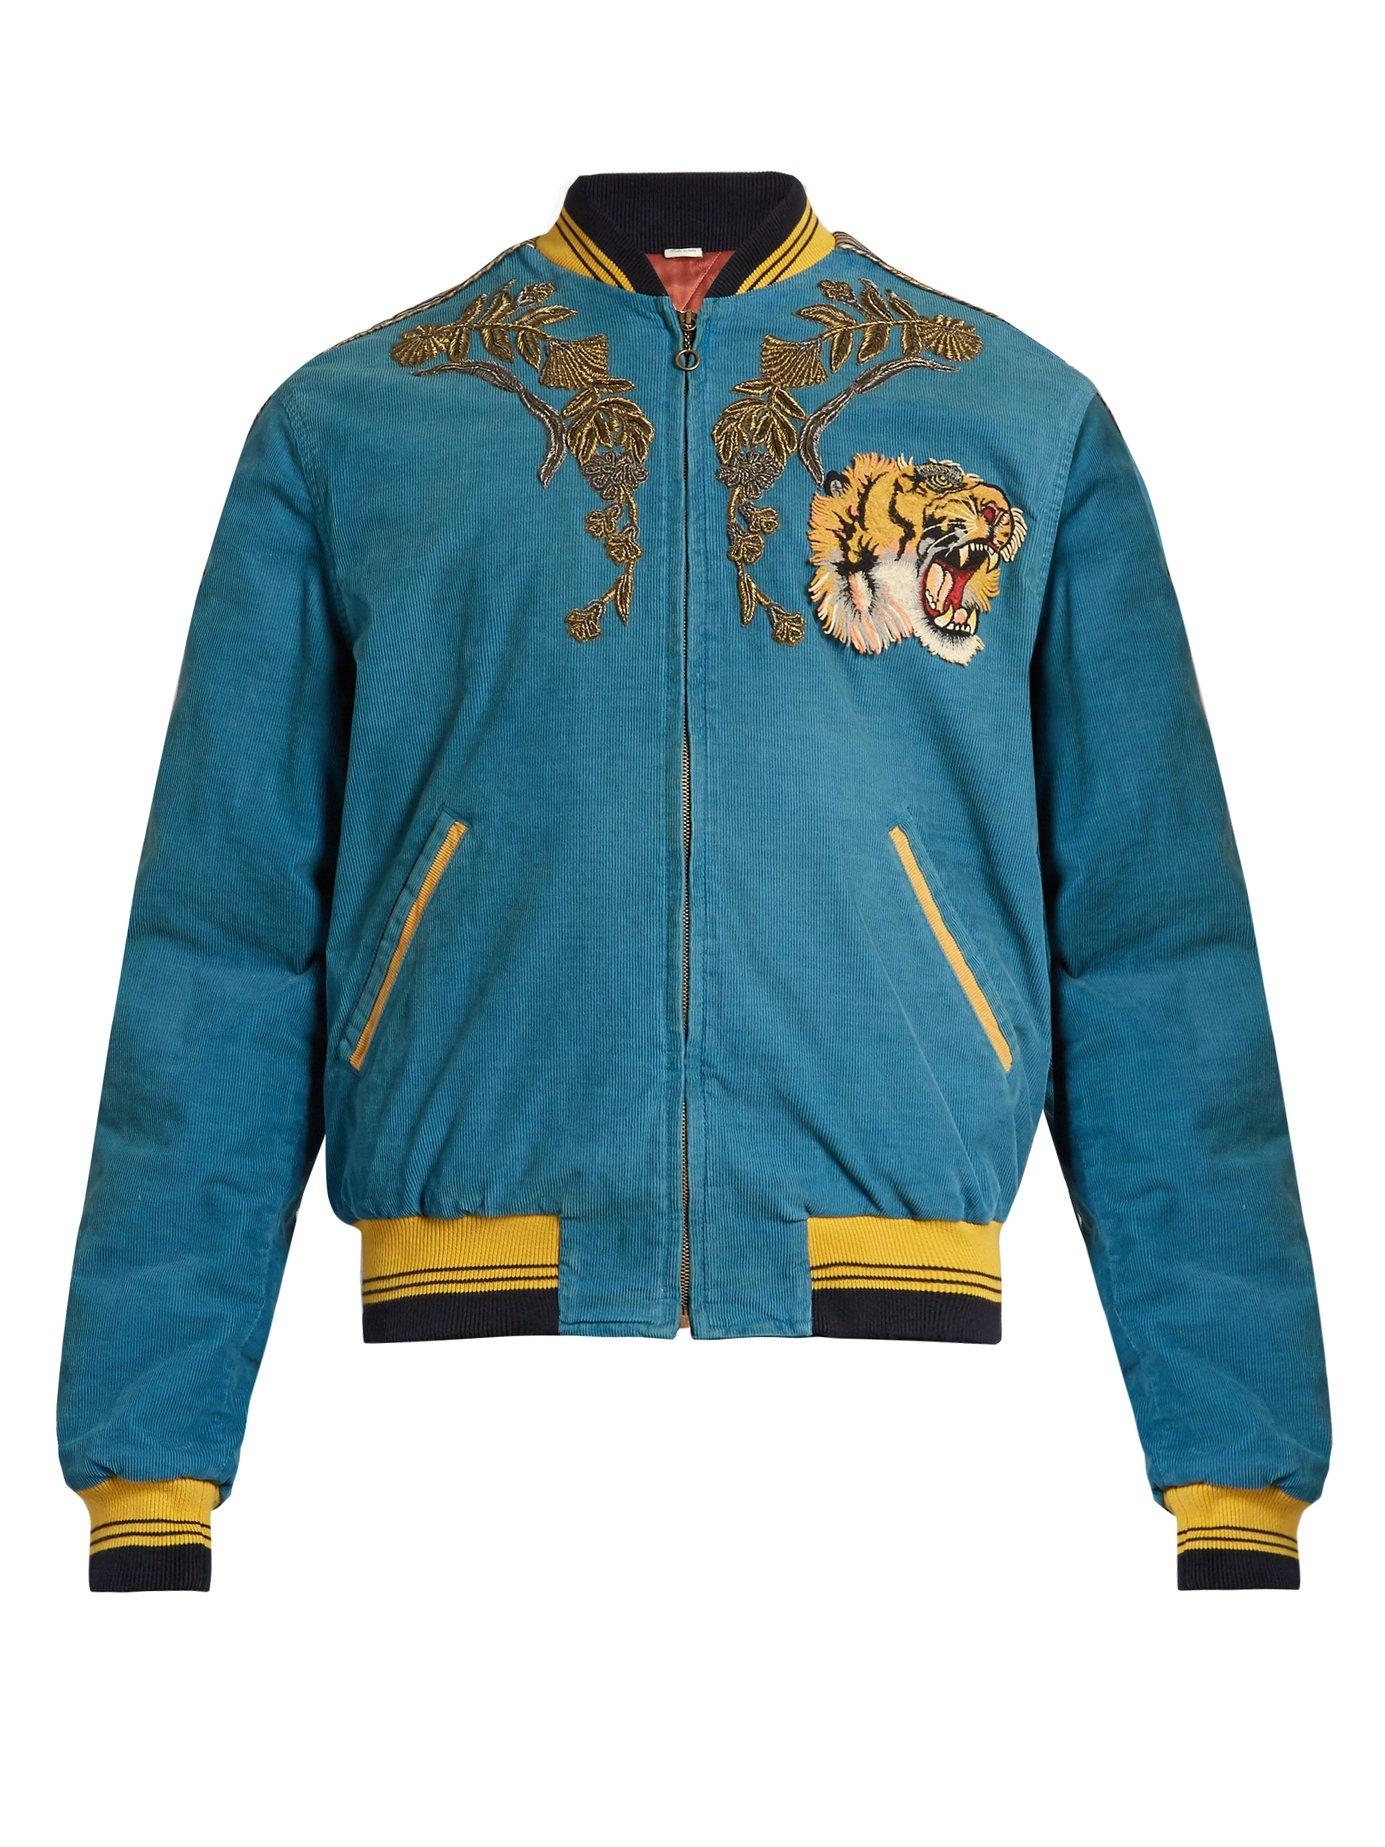 9e02442e Gucci Dragon Embroidered Corduroy Bomber Jacket in Blue for Men - Lyst